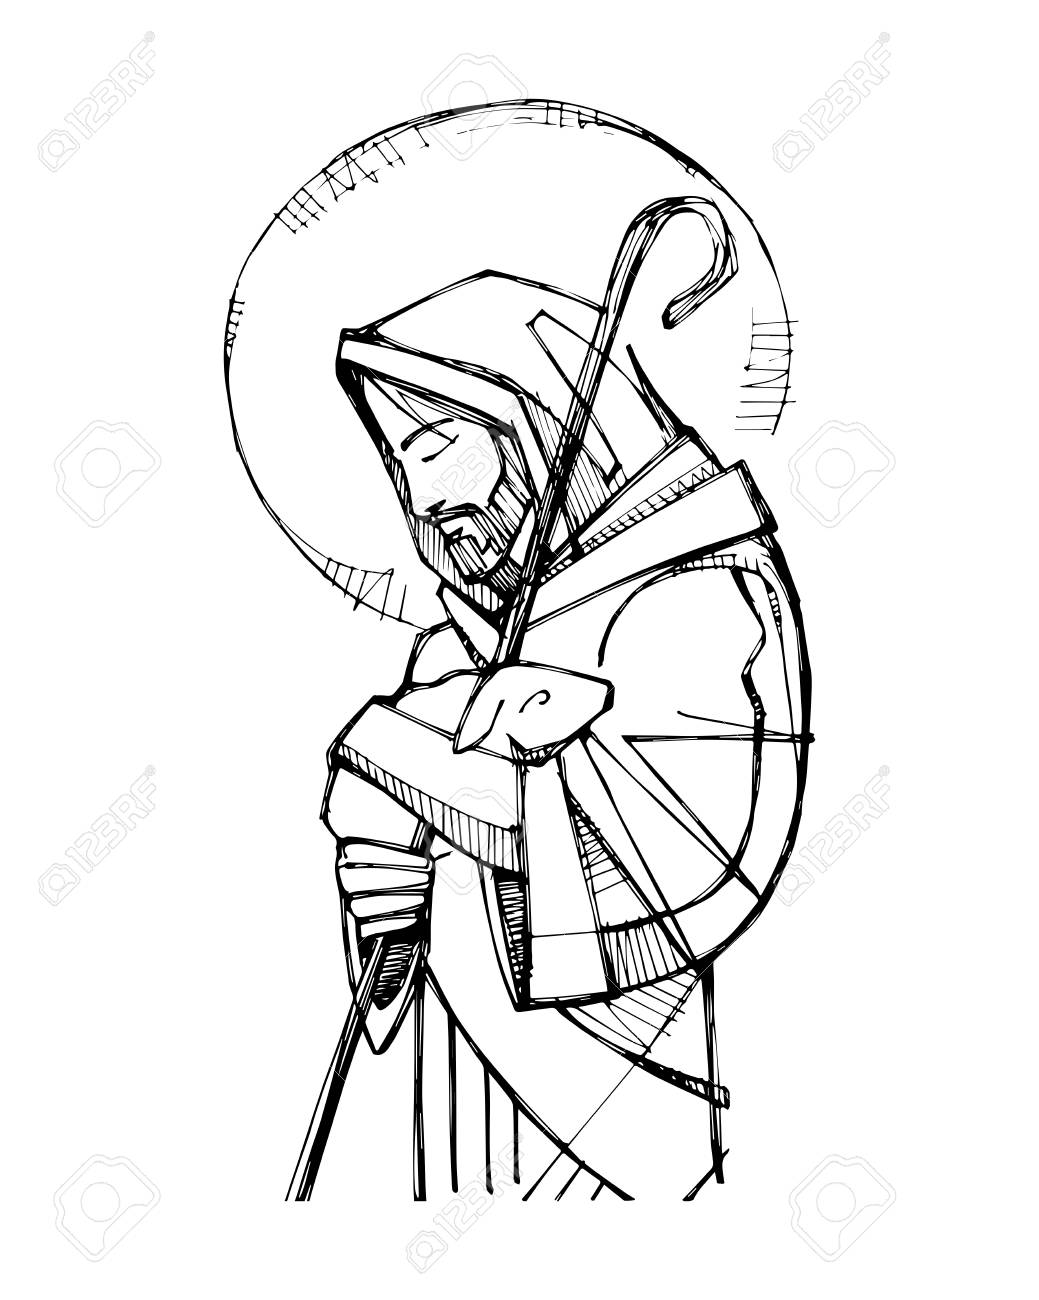 Vector illustration or drawing of Jesus Christ Good Shepherd.